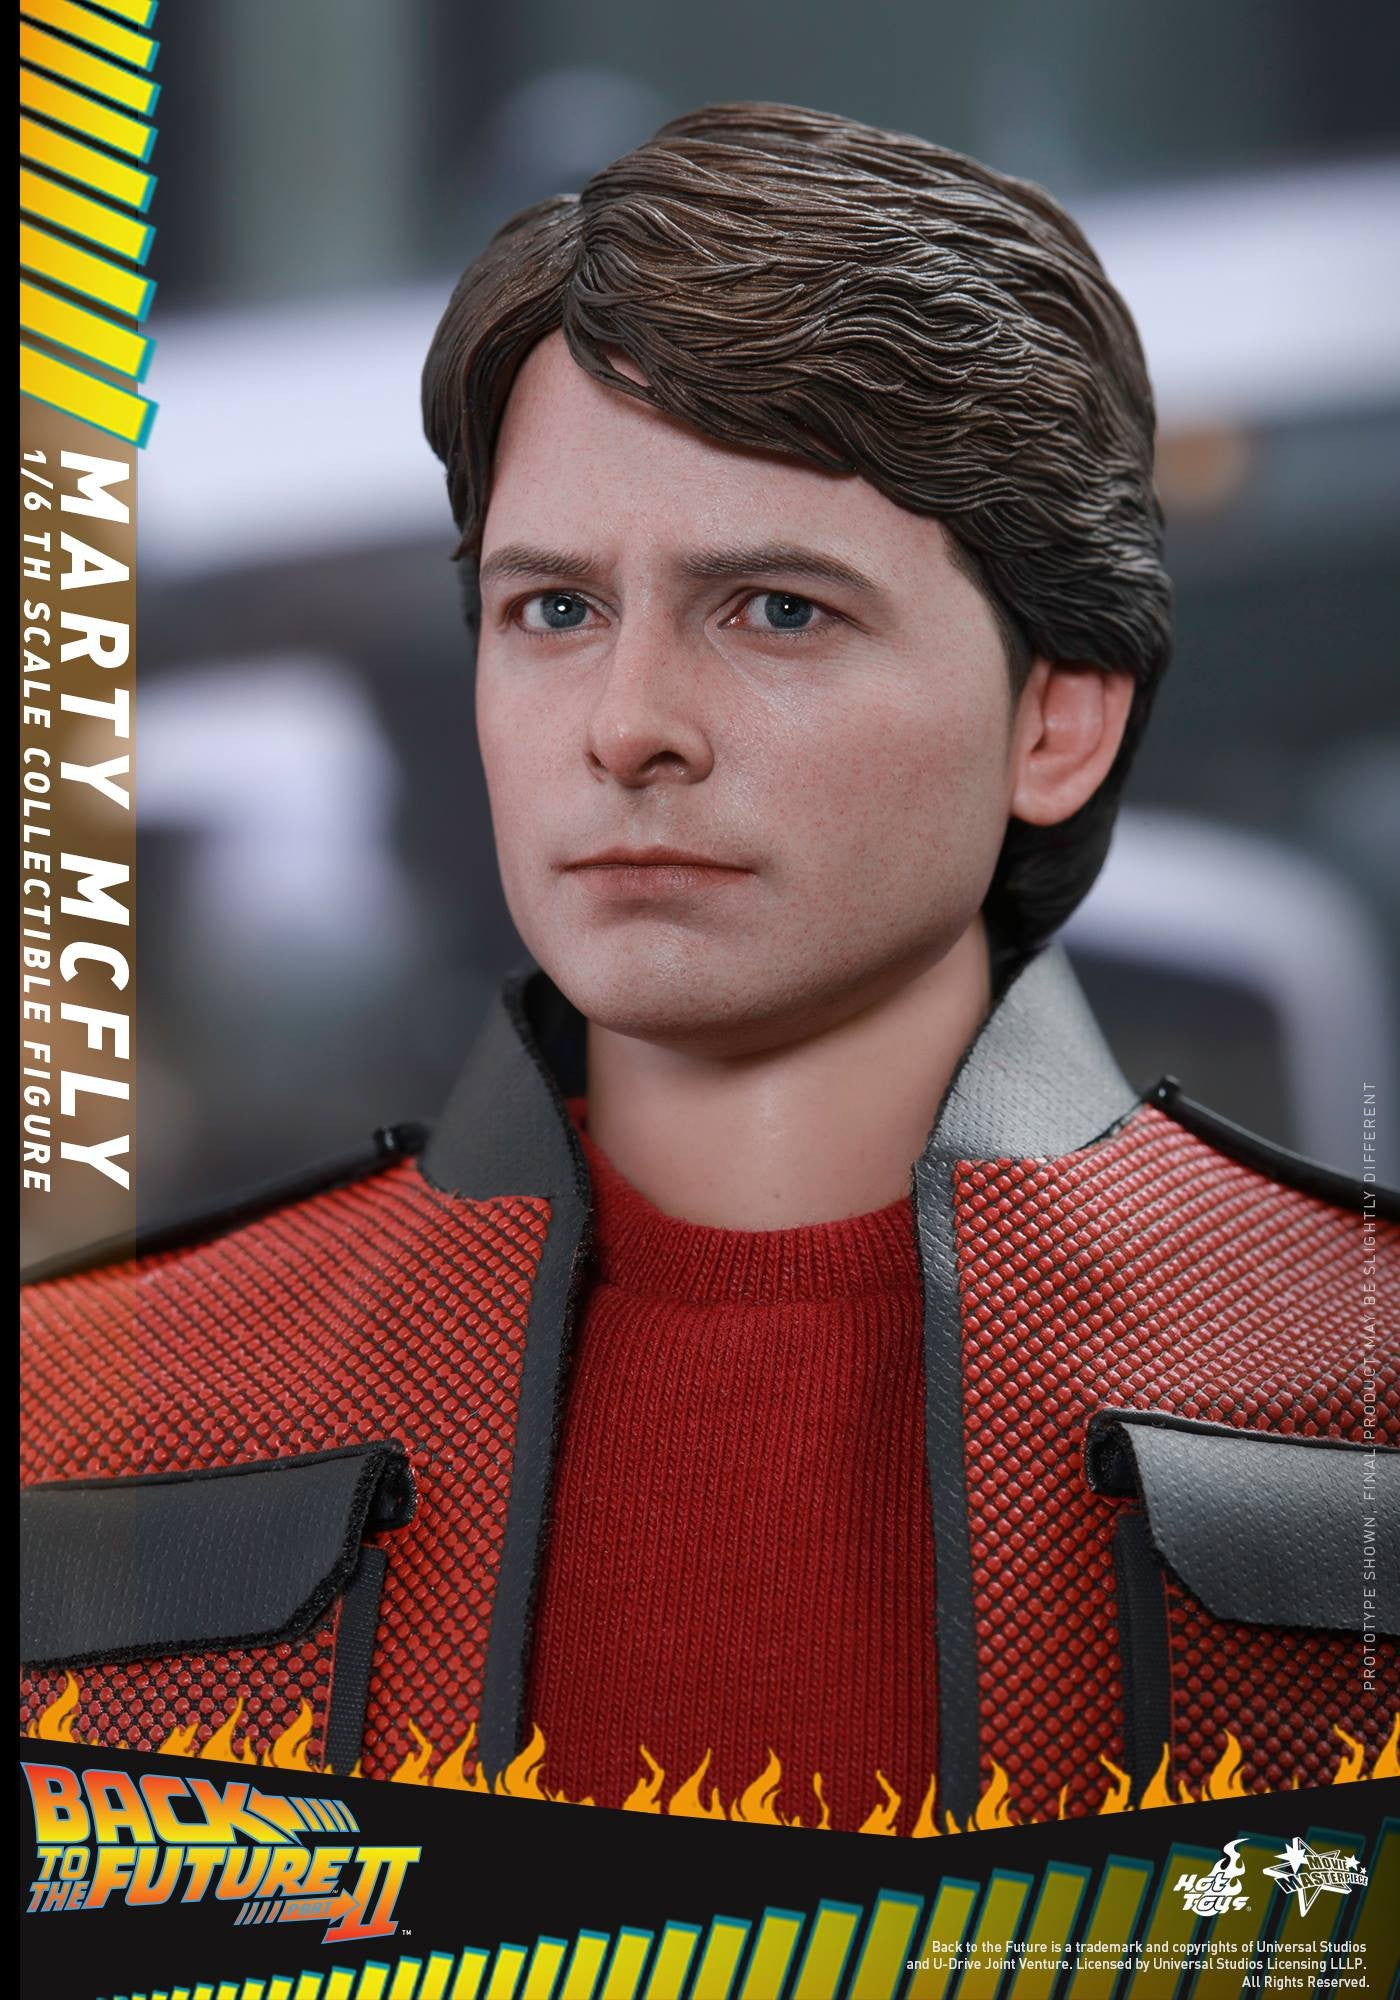 Hot Toys - MMS379 - Back to The Future Part II - Marty McFly (Normal Edition) - Marvelous Toys - 8